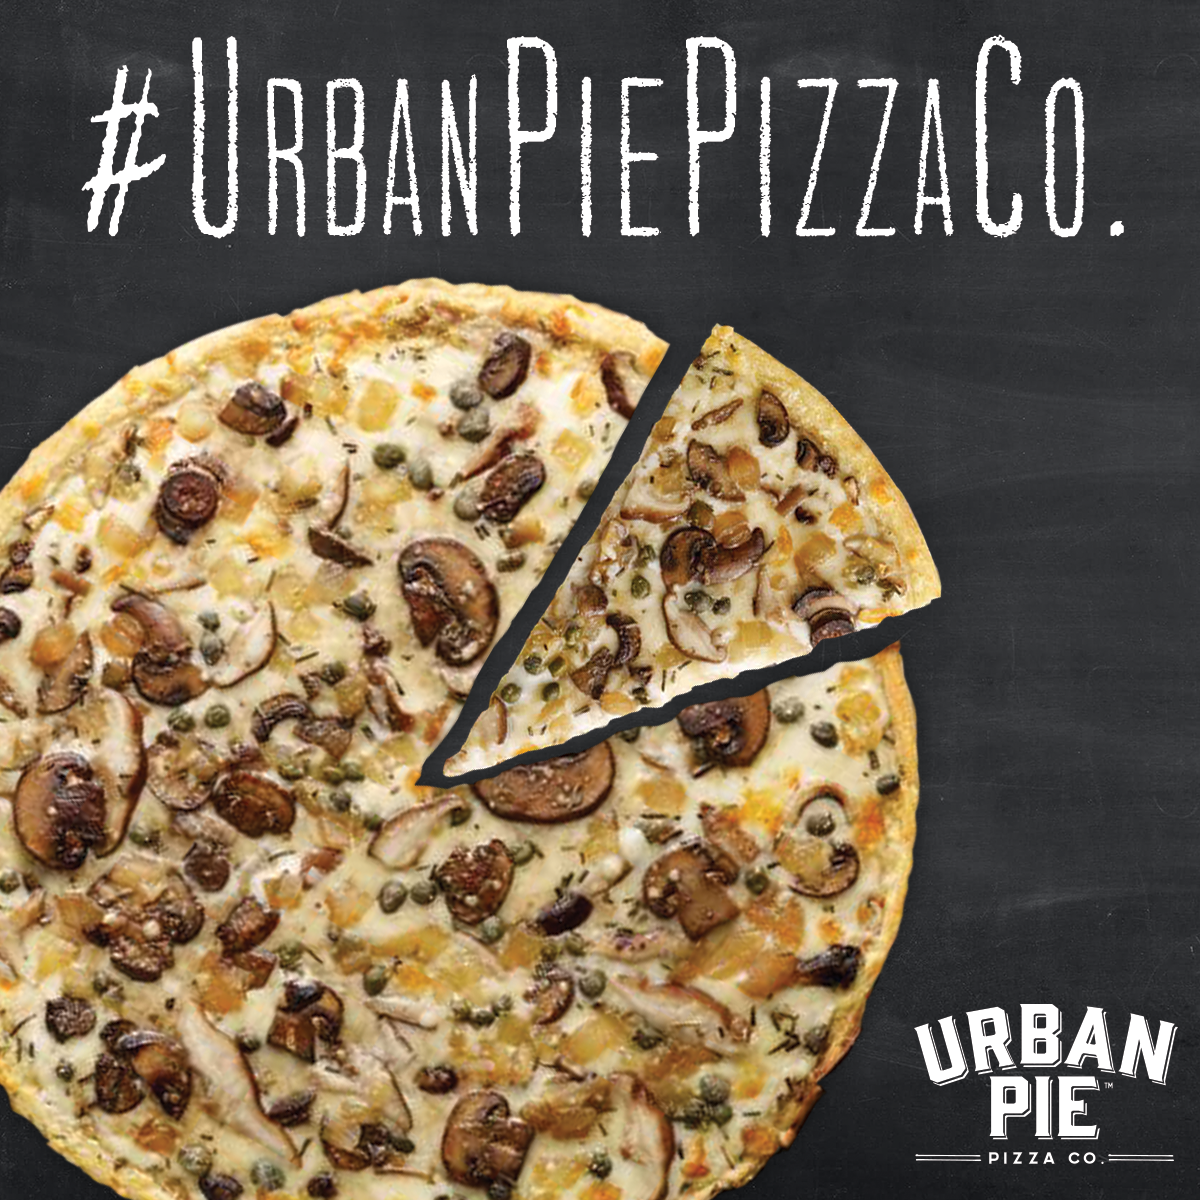 "In front of a slate gray background sits a cooked Urban Pie pizza topped with cheese, mushrooms, and onions. One slice is cut out from the pie and sitting separate. Across the top of the picture reads ""#UrbanPiePizzaCo"""